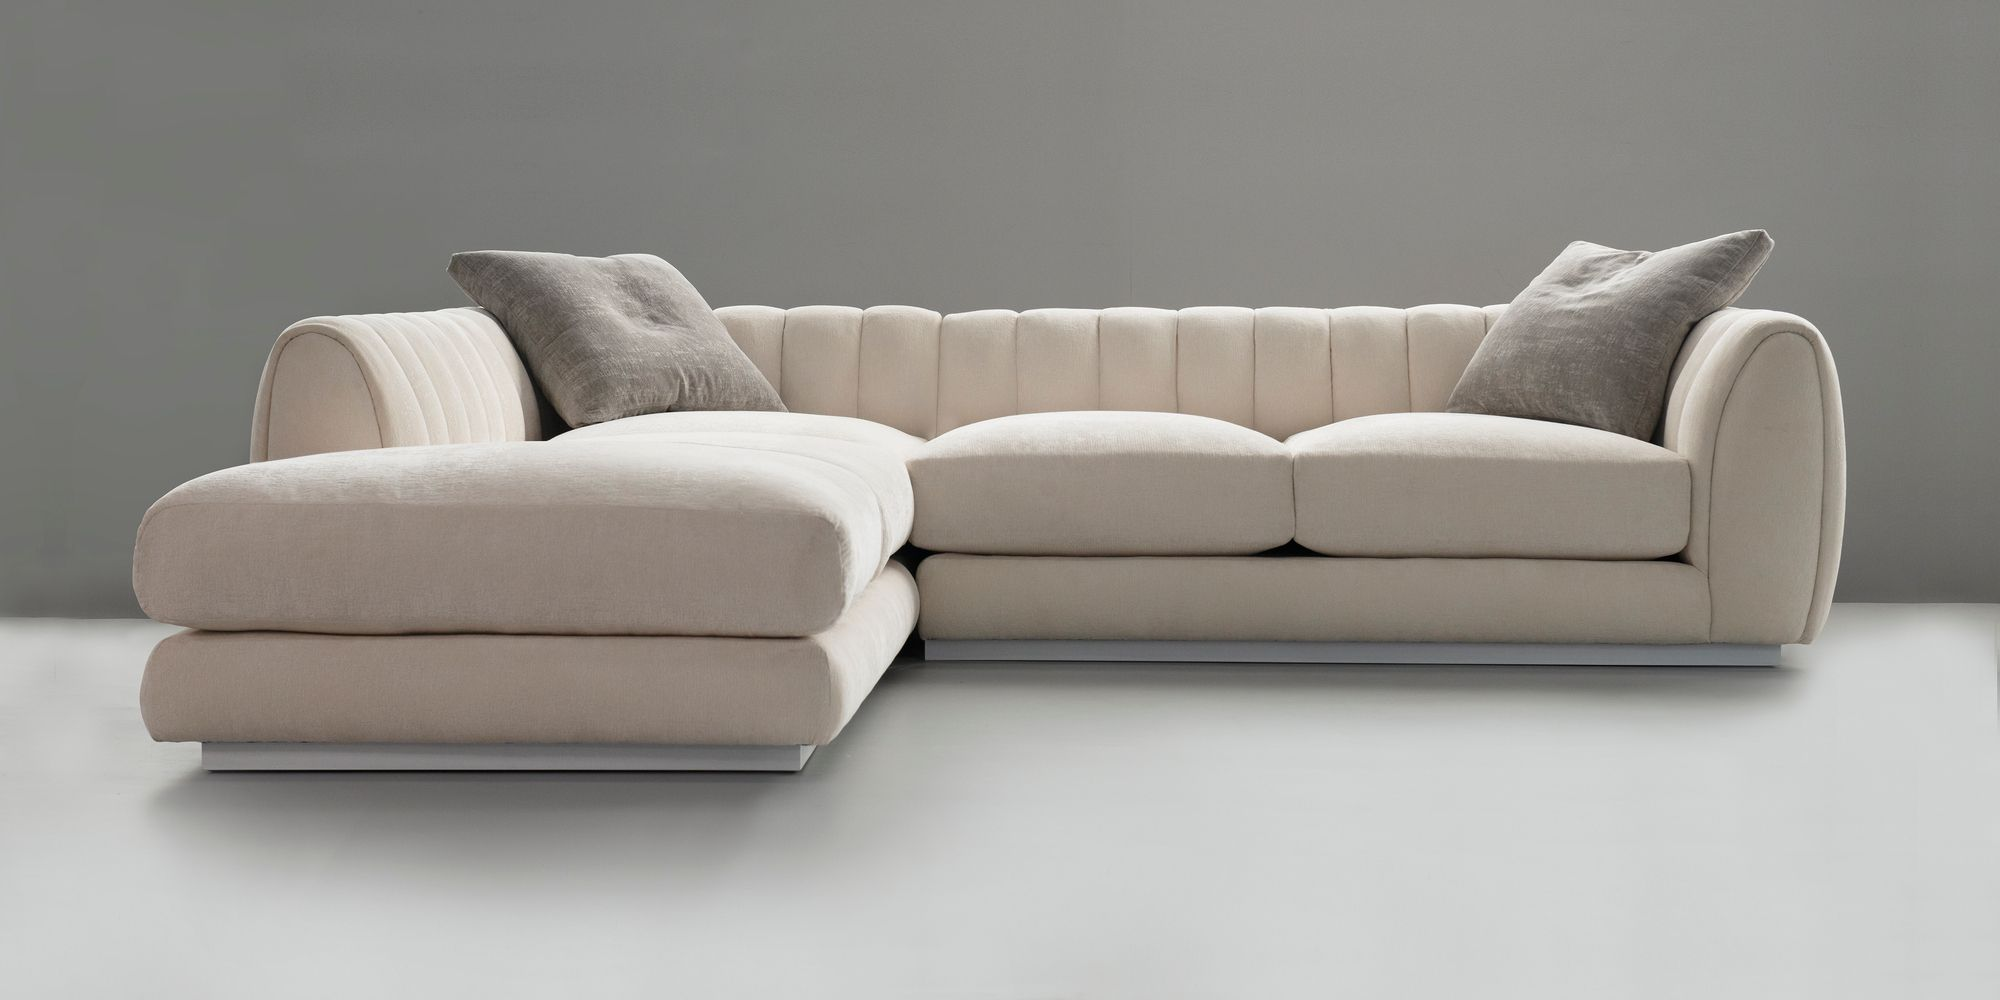 Michel In 2020 Deep Seated Sectional Sectional Elegant Sofa